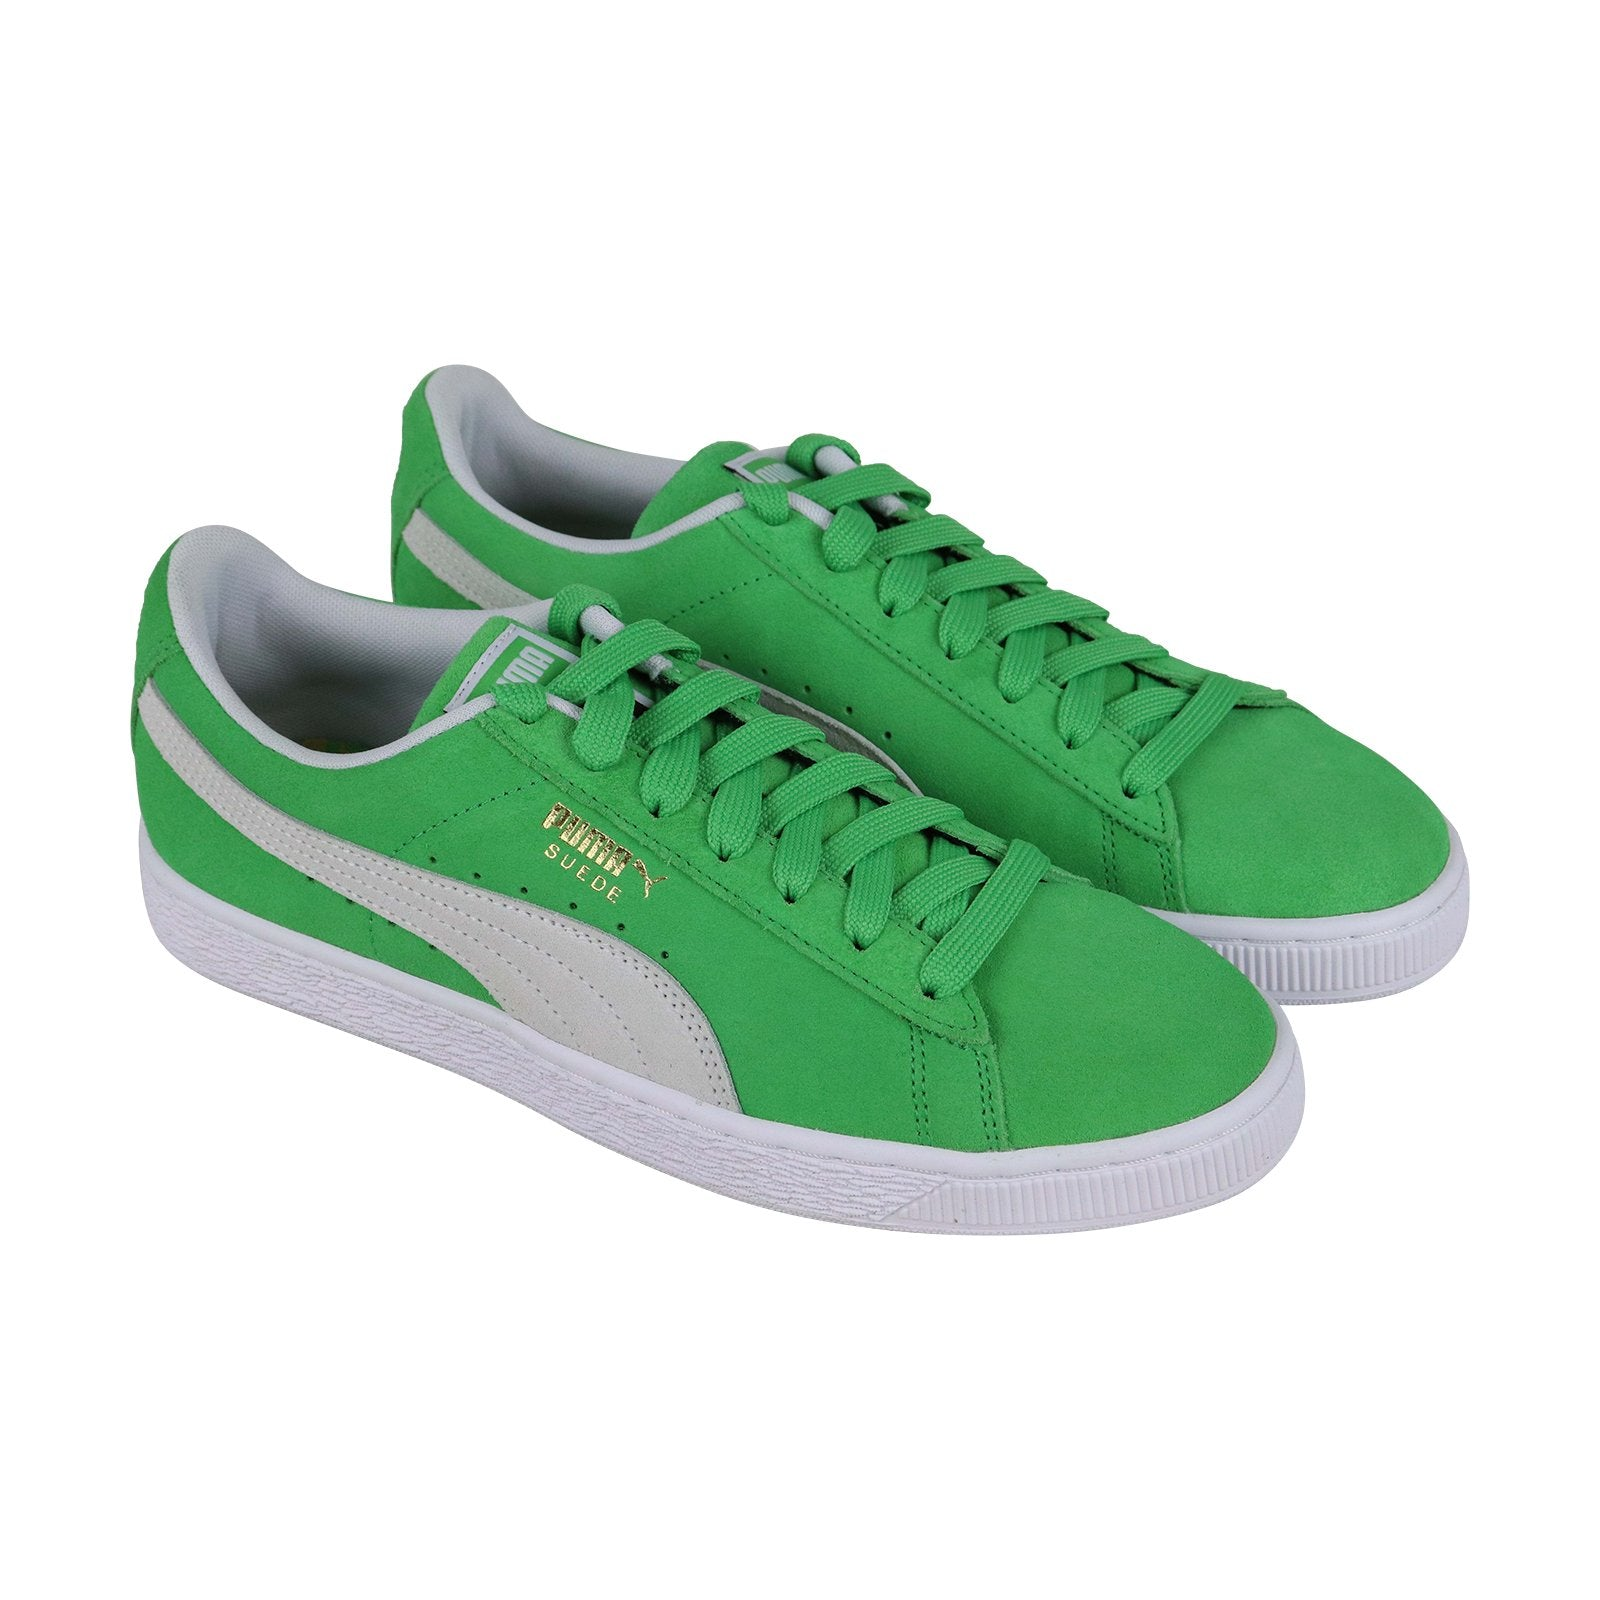 Puma Suede Classic 36534768 Mens Green Lace Up Low Top Sneakers Shoes